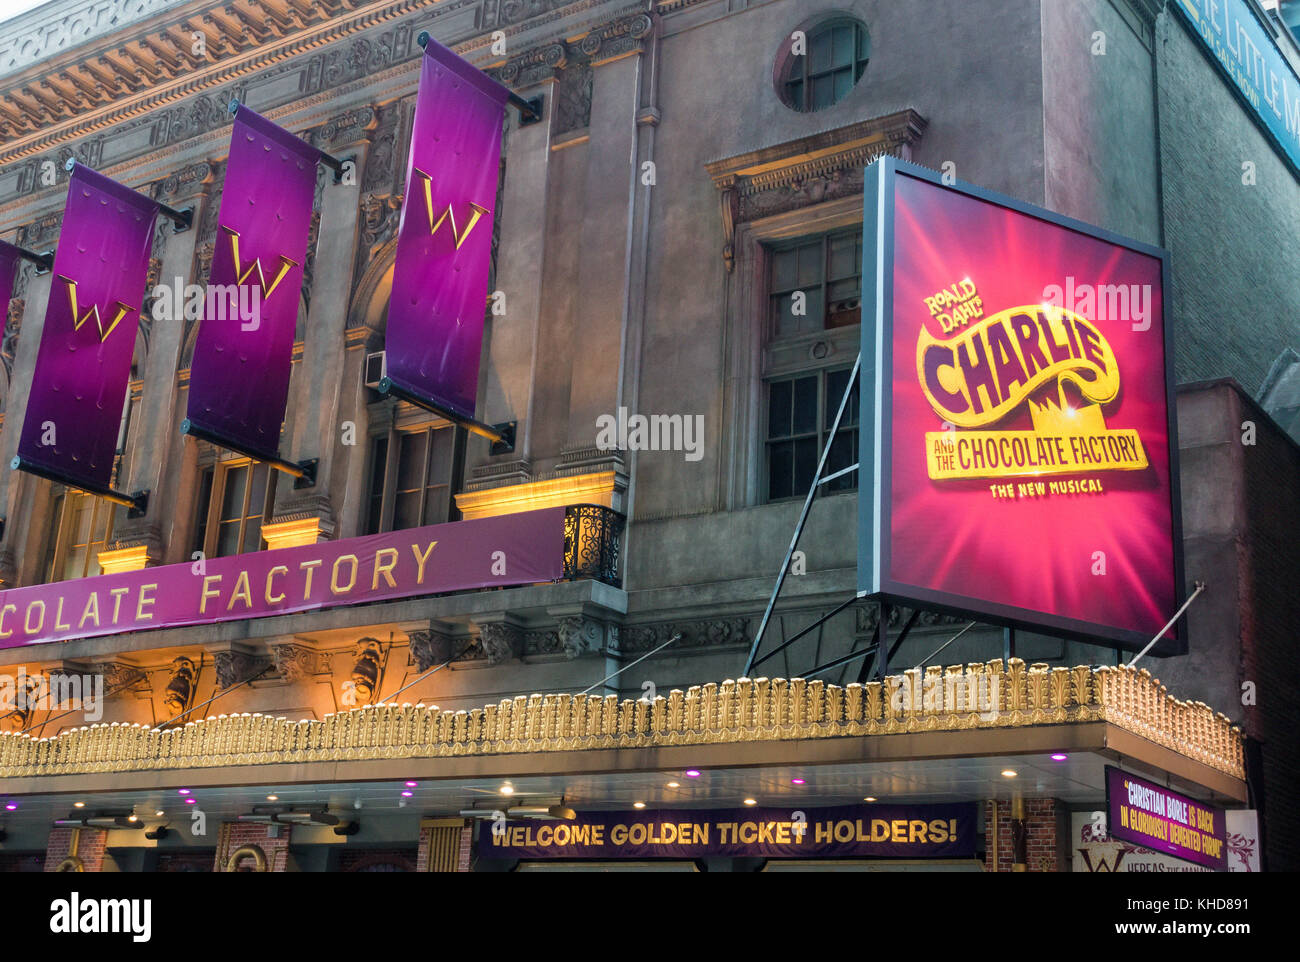 Charlie and the Chocolate Factory, a musical based on the Roald Dahl story at the Lunt-Fontanne Theatre in New York - Stock Image